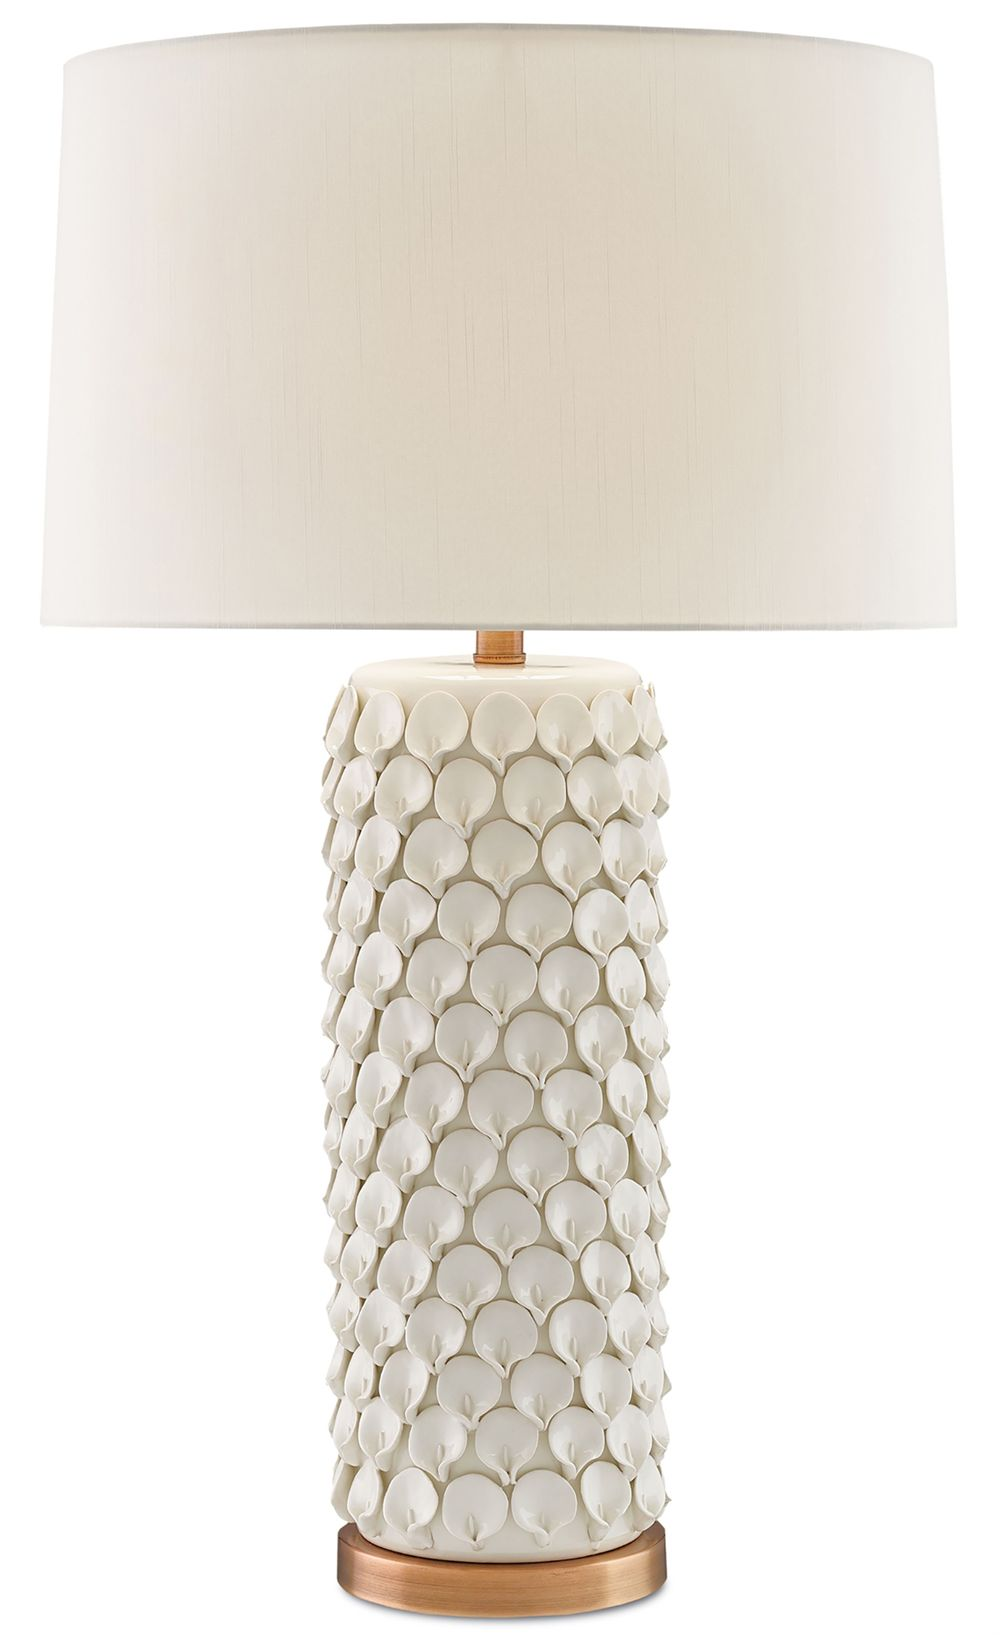 Calla Lily Table Lamp Currey And Company In 2020 Table Lamp Lamp Feminine Lamp